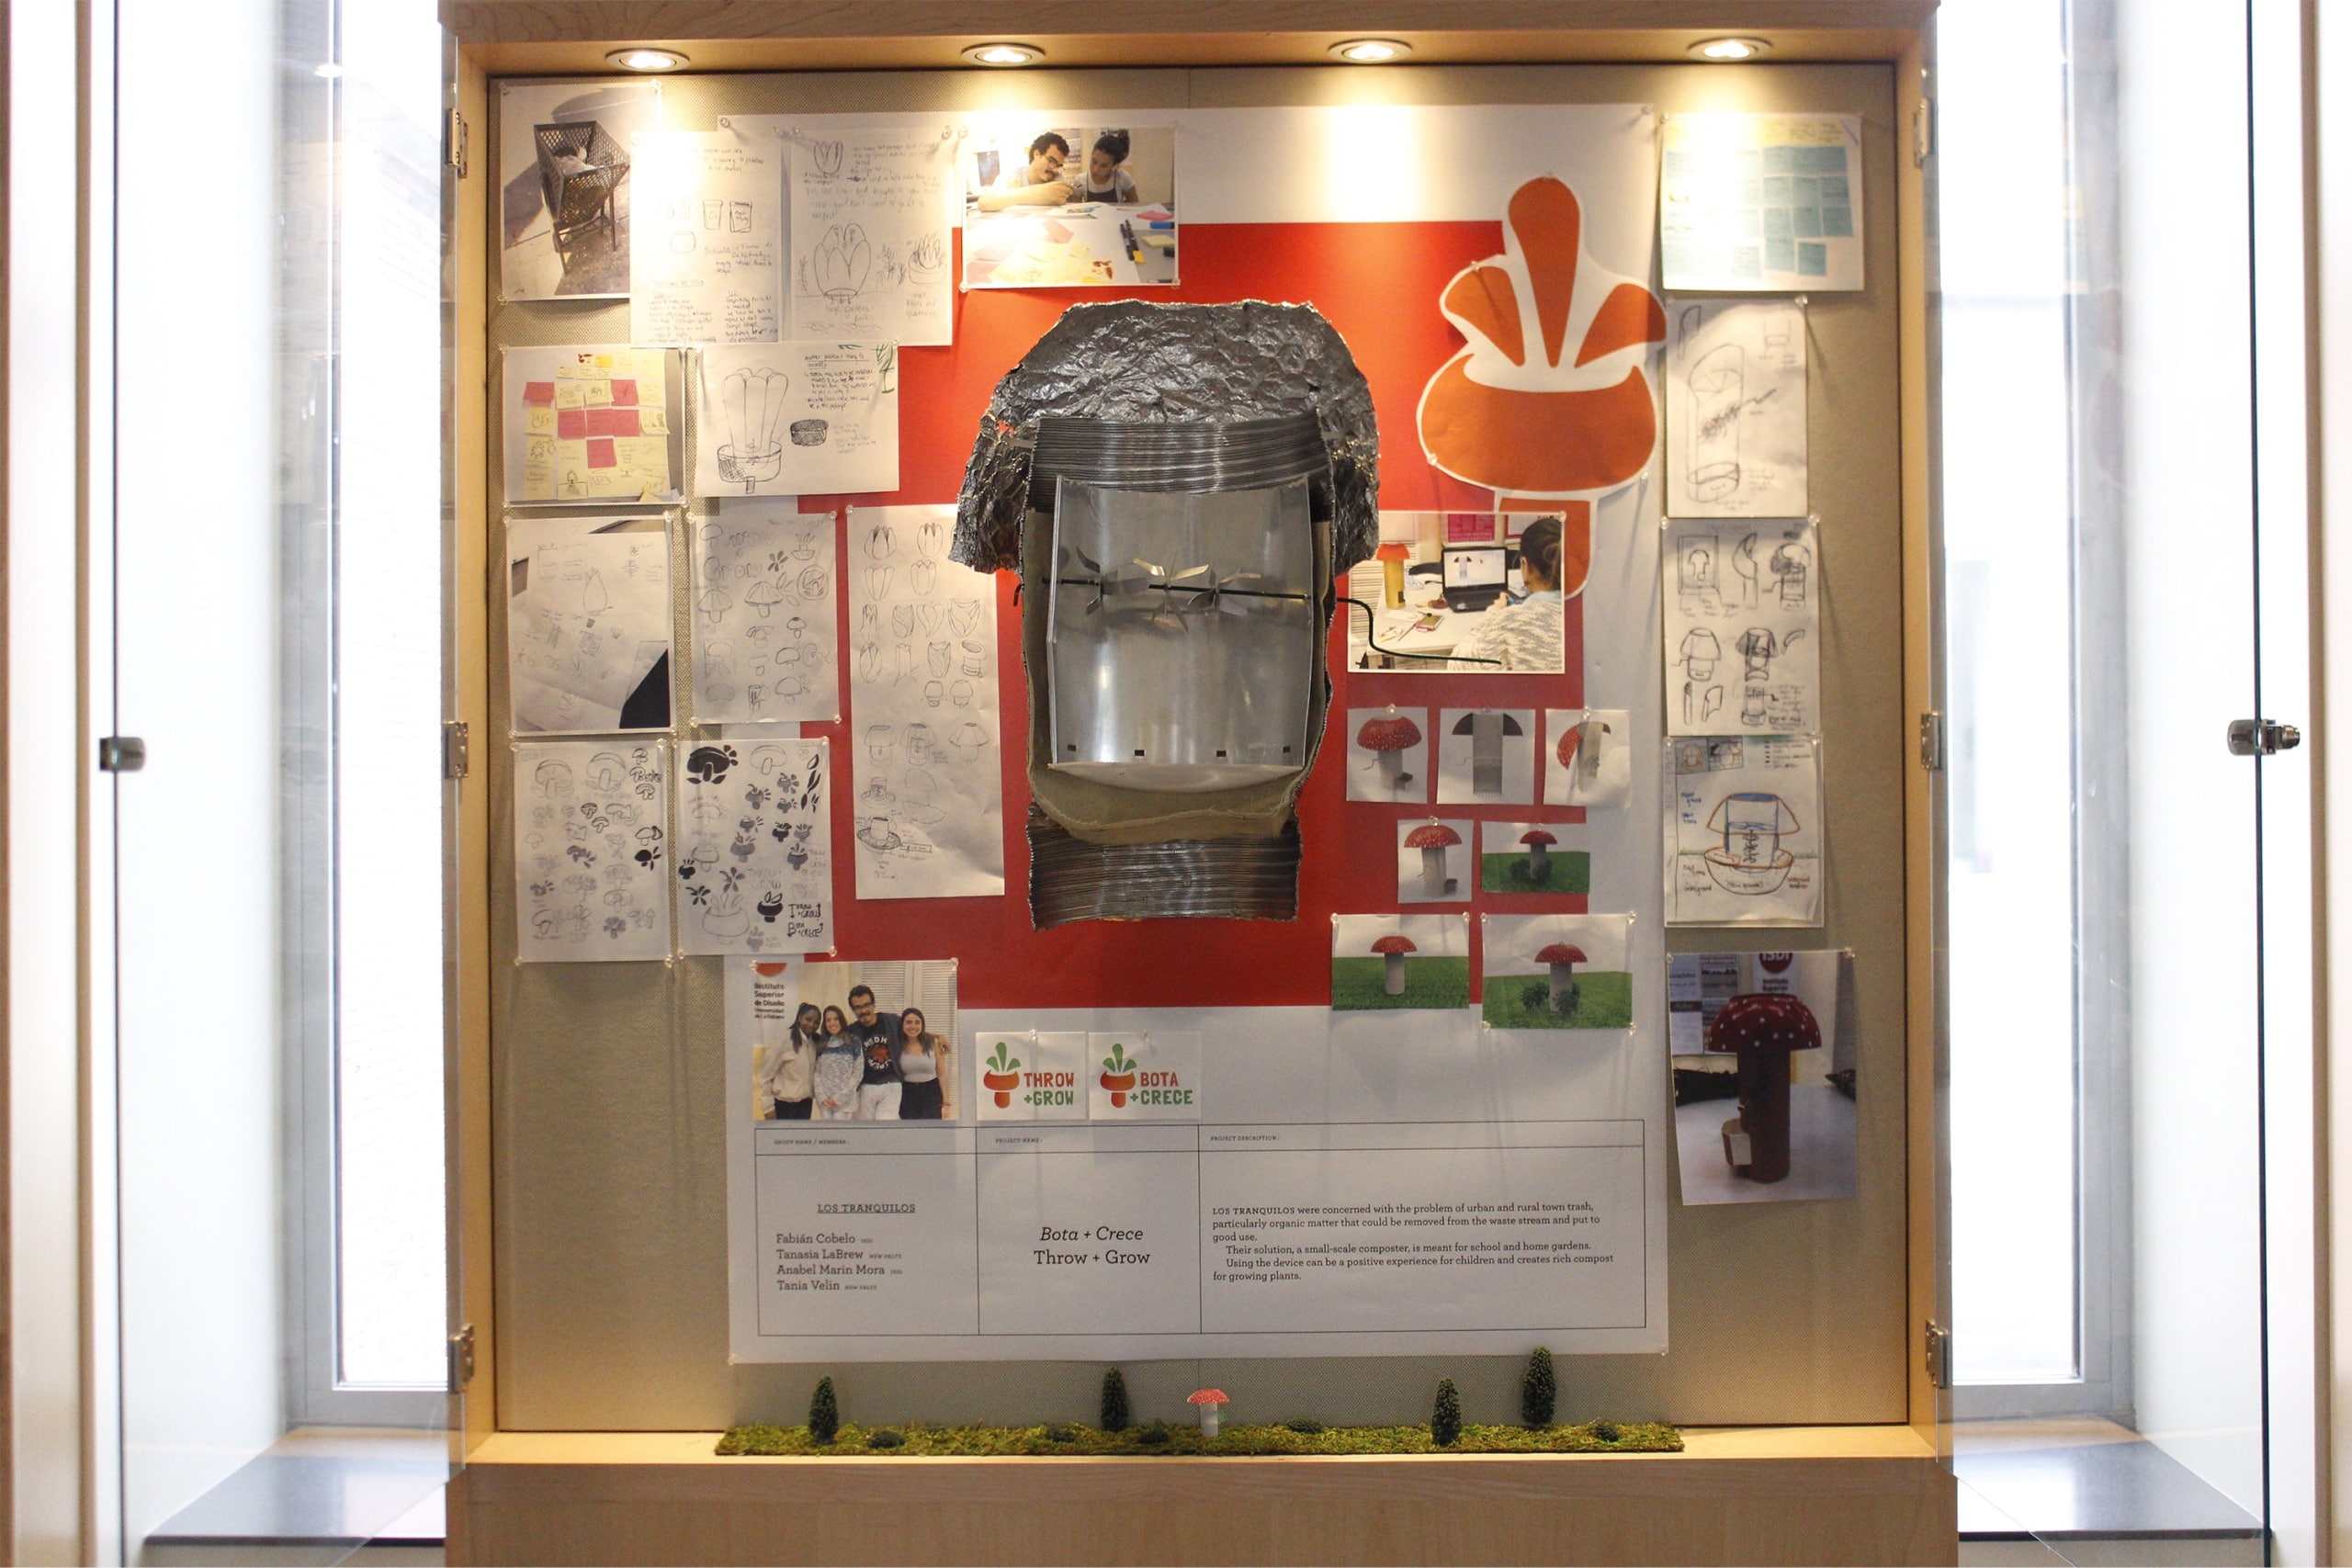 Exhibition window showing the process and cut through model of the Throw + Grow in Sojourner Truth Library, April 2019